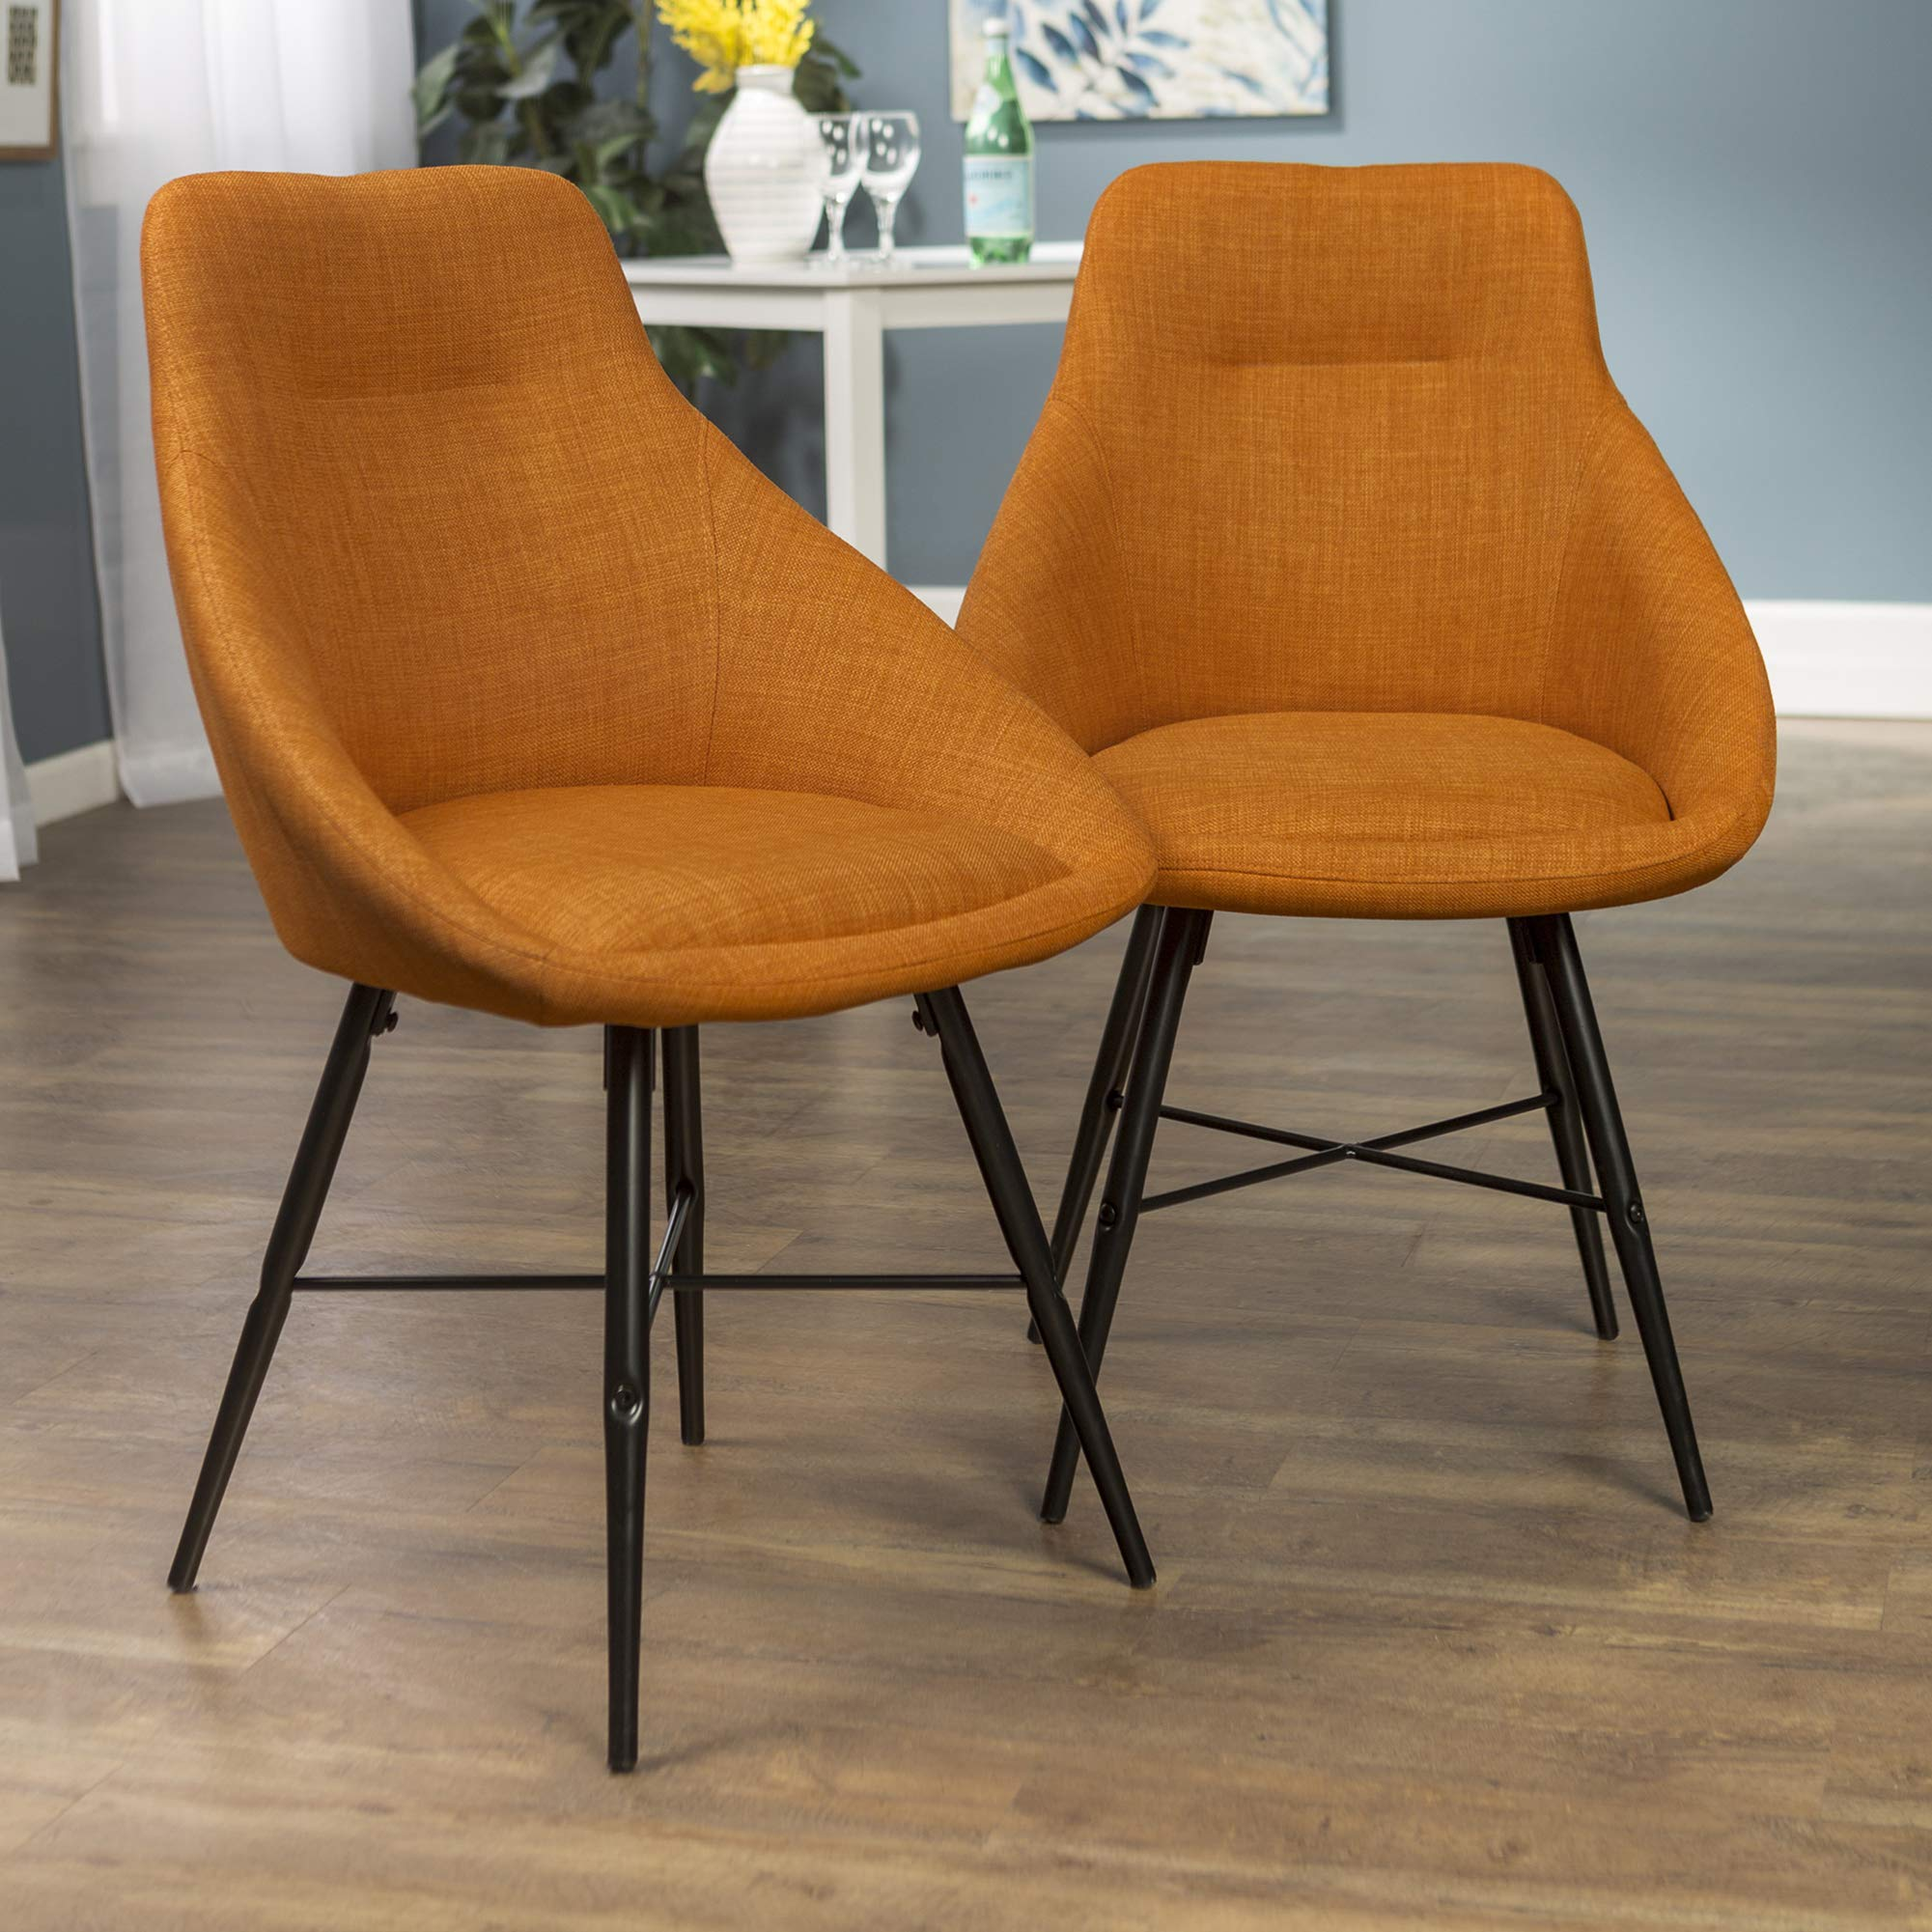 WE Furniture Mid Century Modern Upholstered Fabric Dining Room Chairs, Set of 2, Orange by WE Furniture